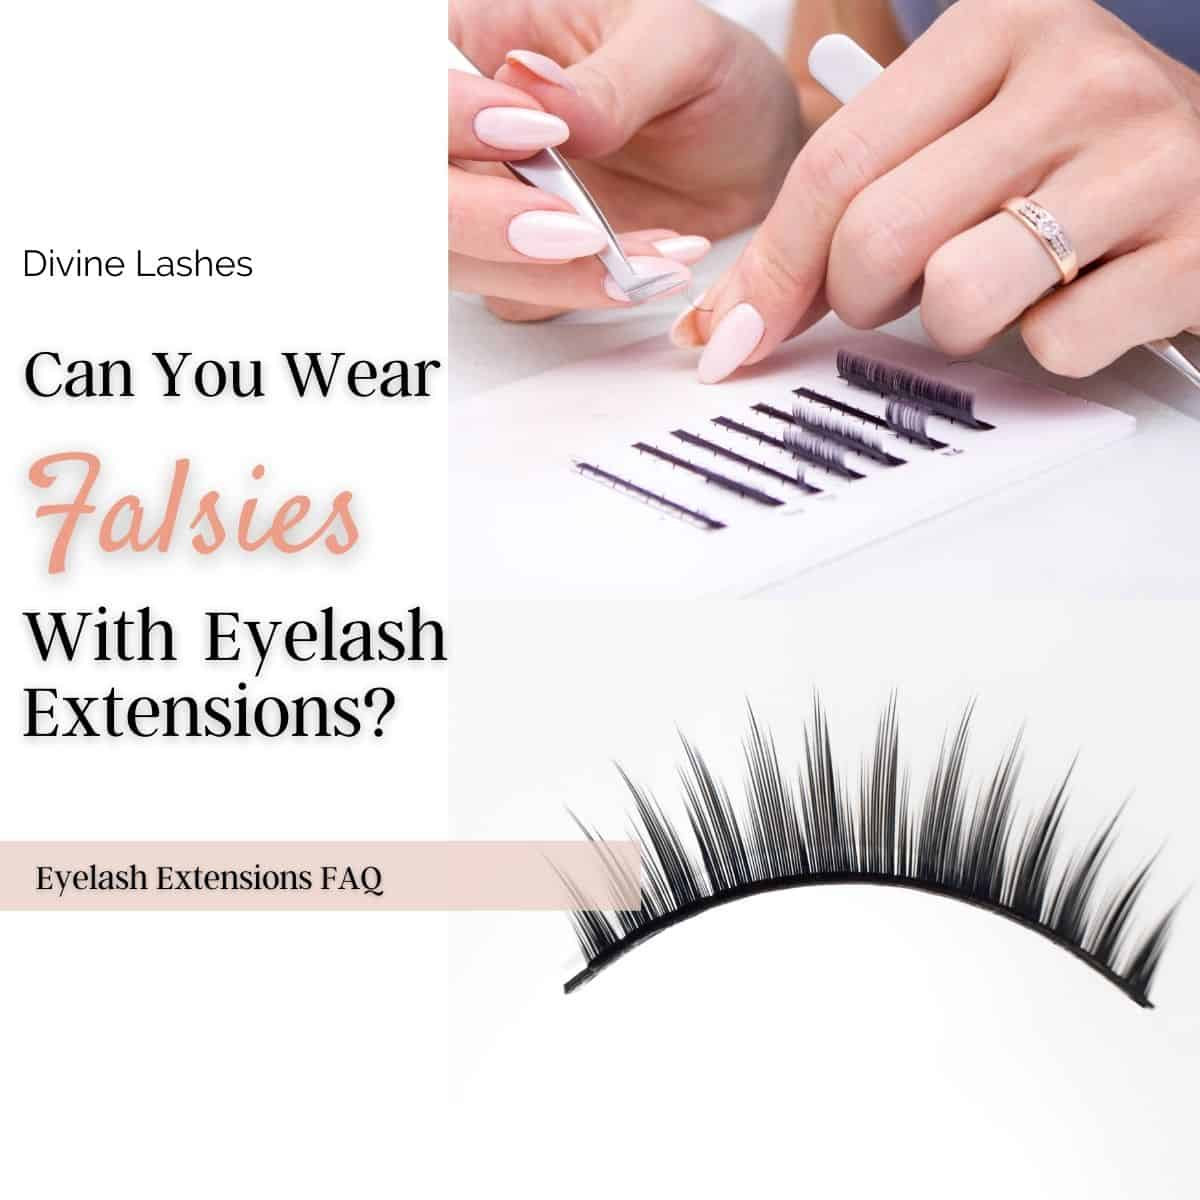 Wearing falsies (strip lashes) with eyelash extensions